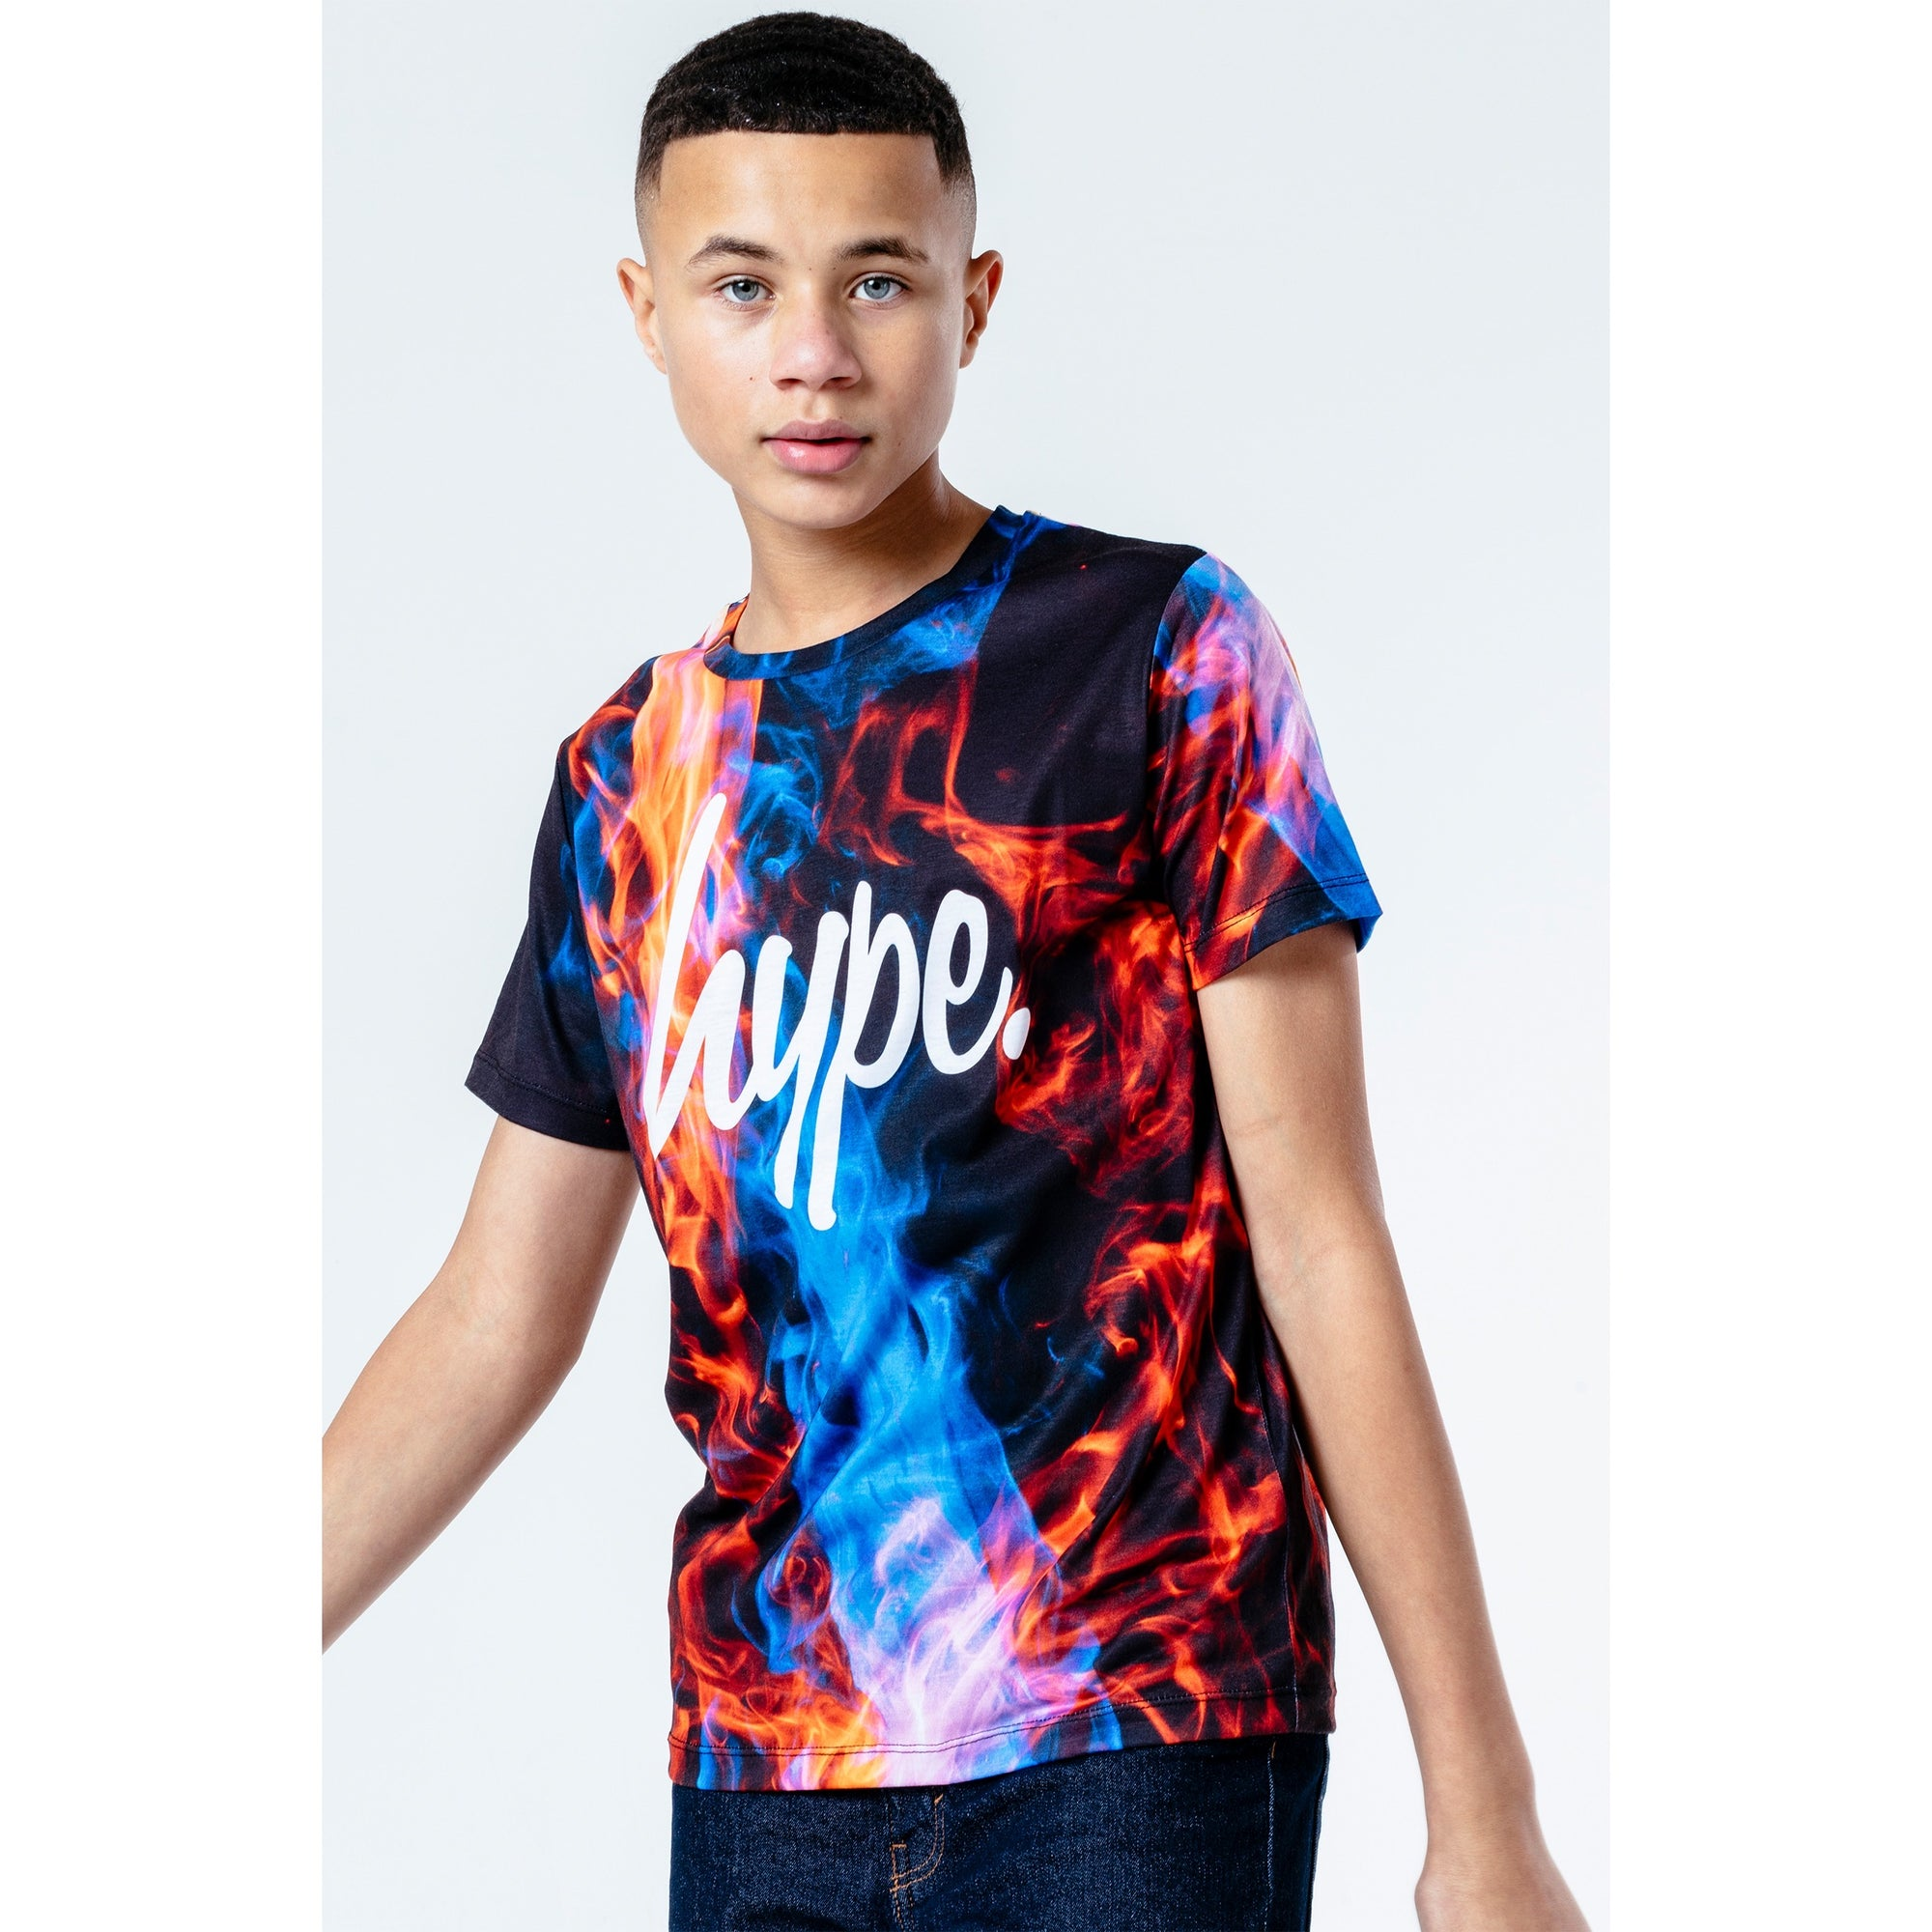 Hype Boys Cyan Fire T-Shirt Ywf306